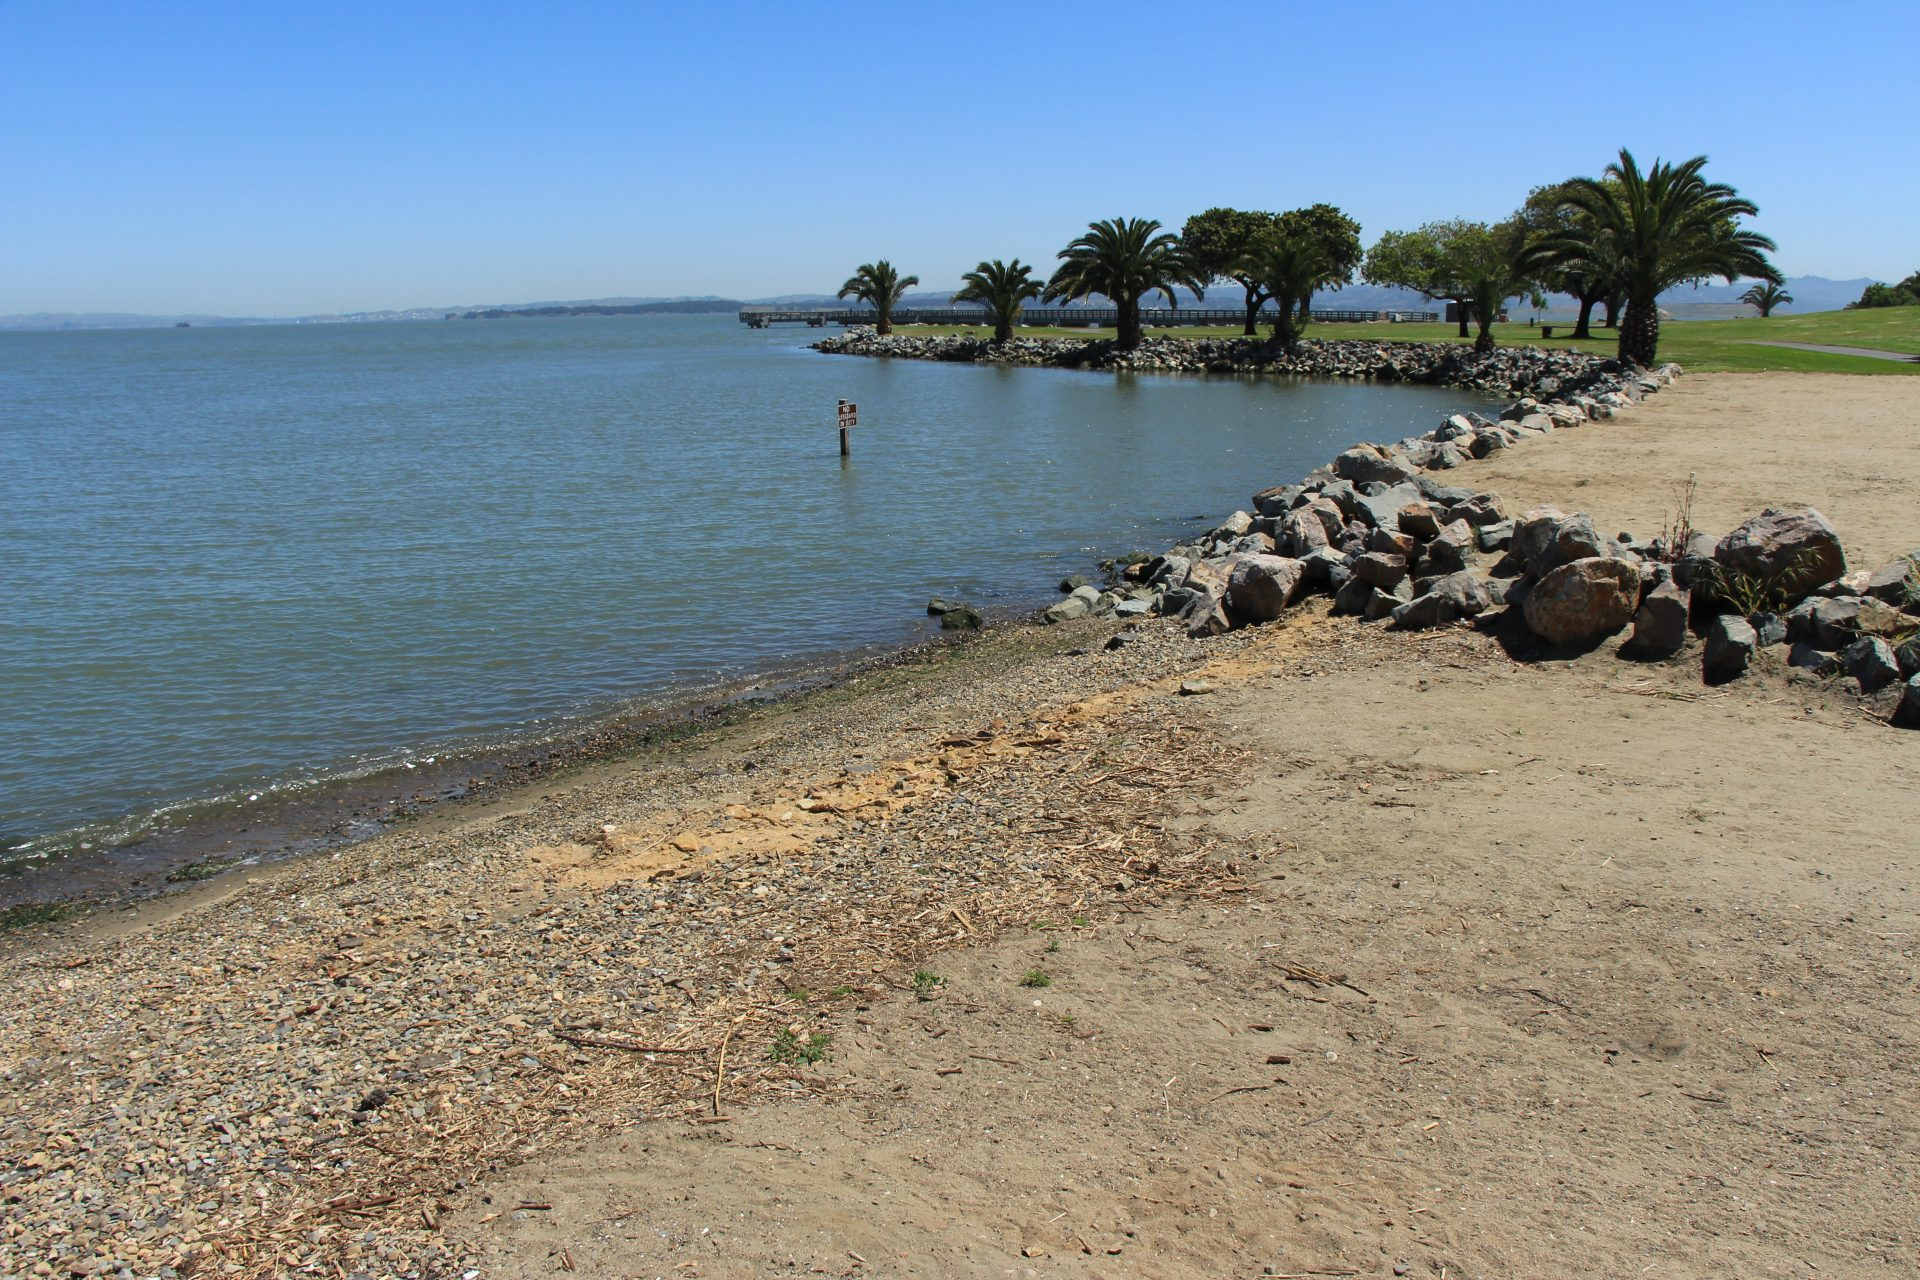 pebbly beach descends into bay, with riprap, grassy meadow and palm trees in distance